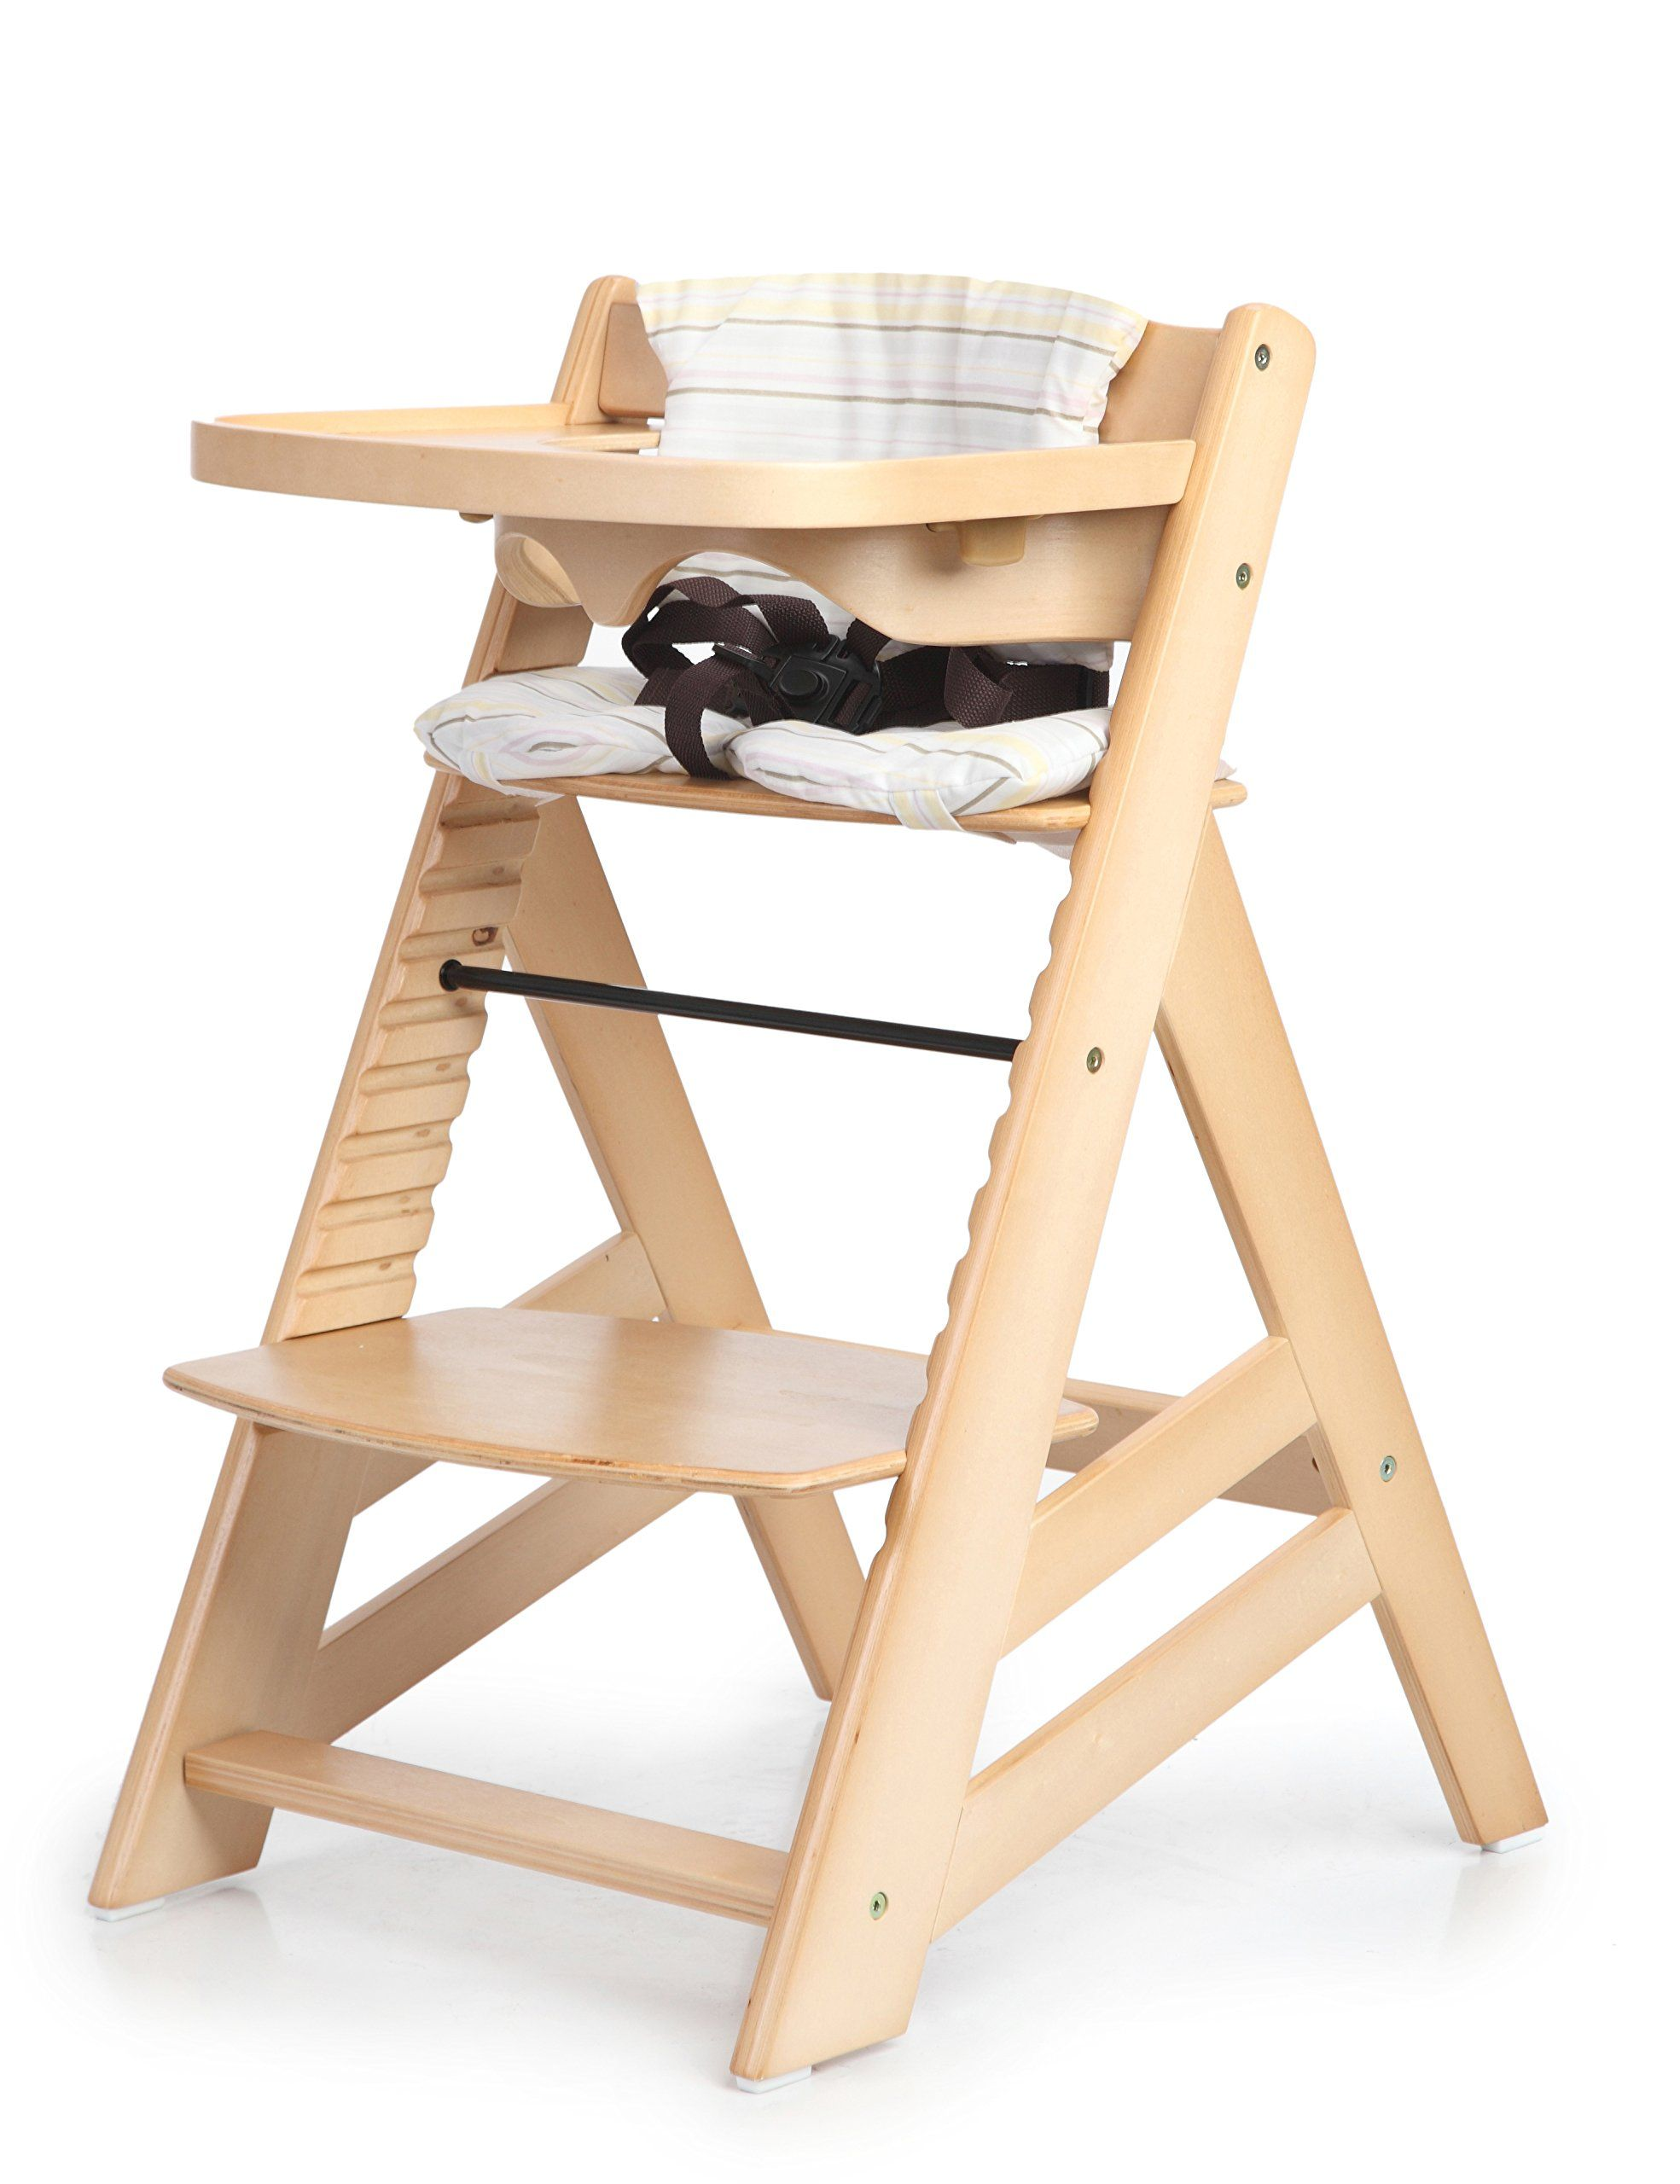 Wooden High Chair Cushion Best Brand Chairs Sepnine Height Adjustable Highchair Baby